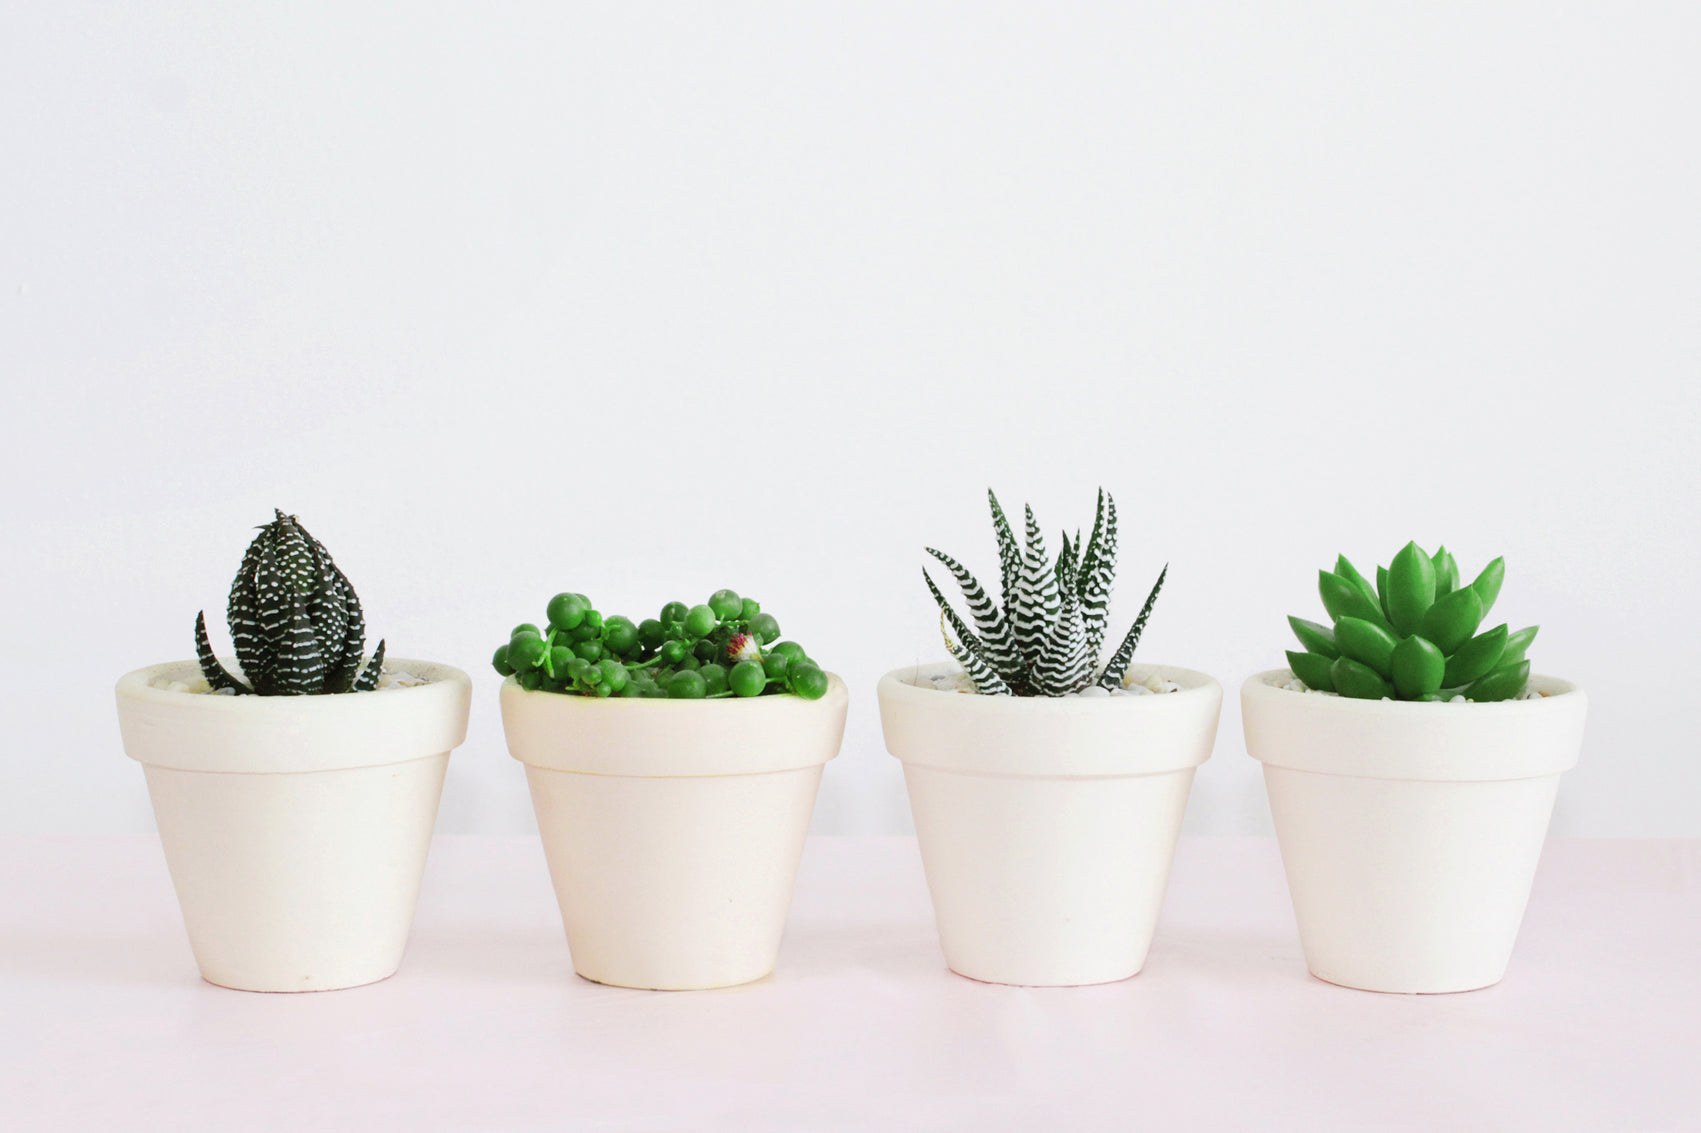 Succulent Subscription Boxes, Succulents for Sale, Succulents Box with Care Guide, Types of Colorful Succulents, Succulents and Cactus